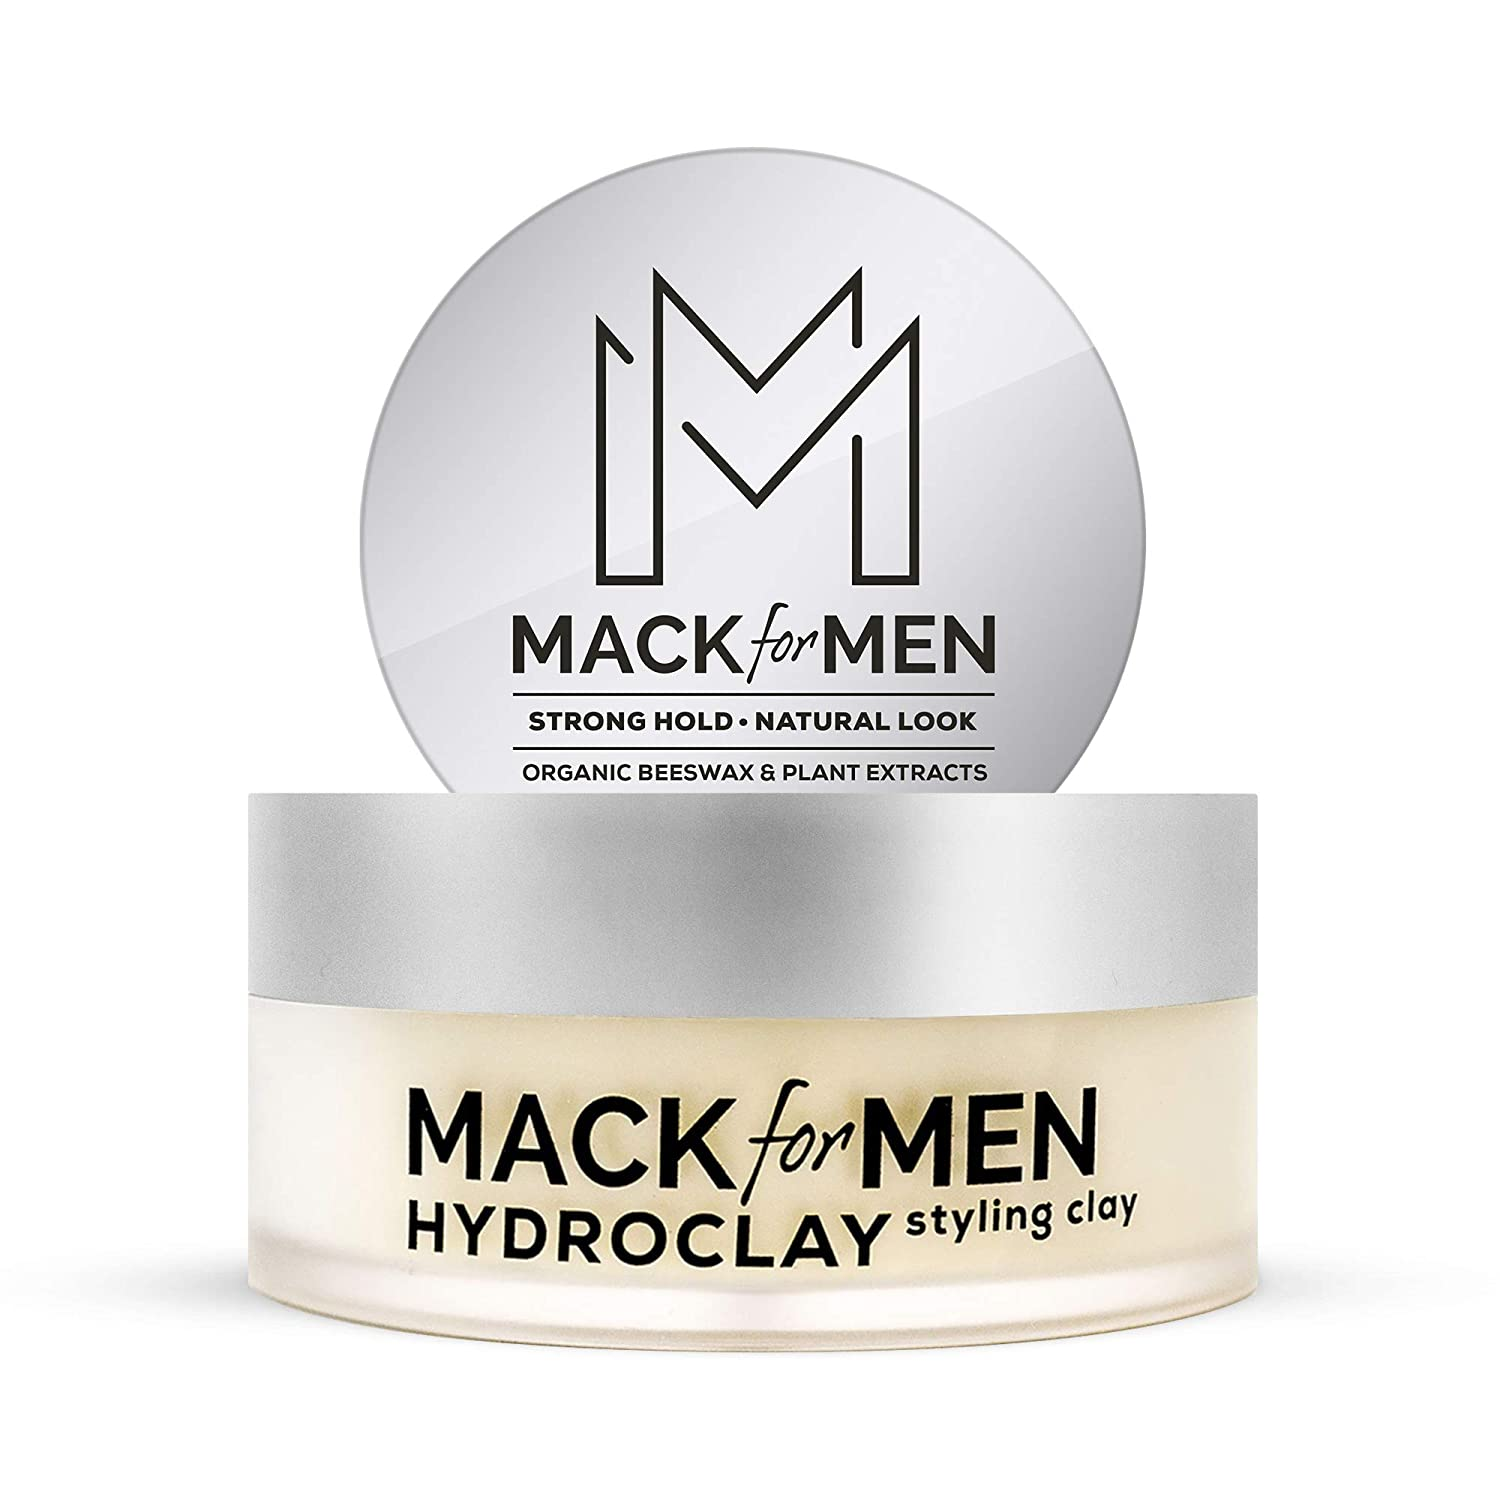 Amazon Com Hydroclay Premium Hair Clay For Men Styling Clay With Organic Beeswax For Hair Plant Based Clay For Hair Natural Look 2 5 Oz Mack For Men Beauty